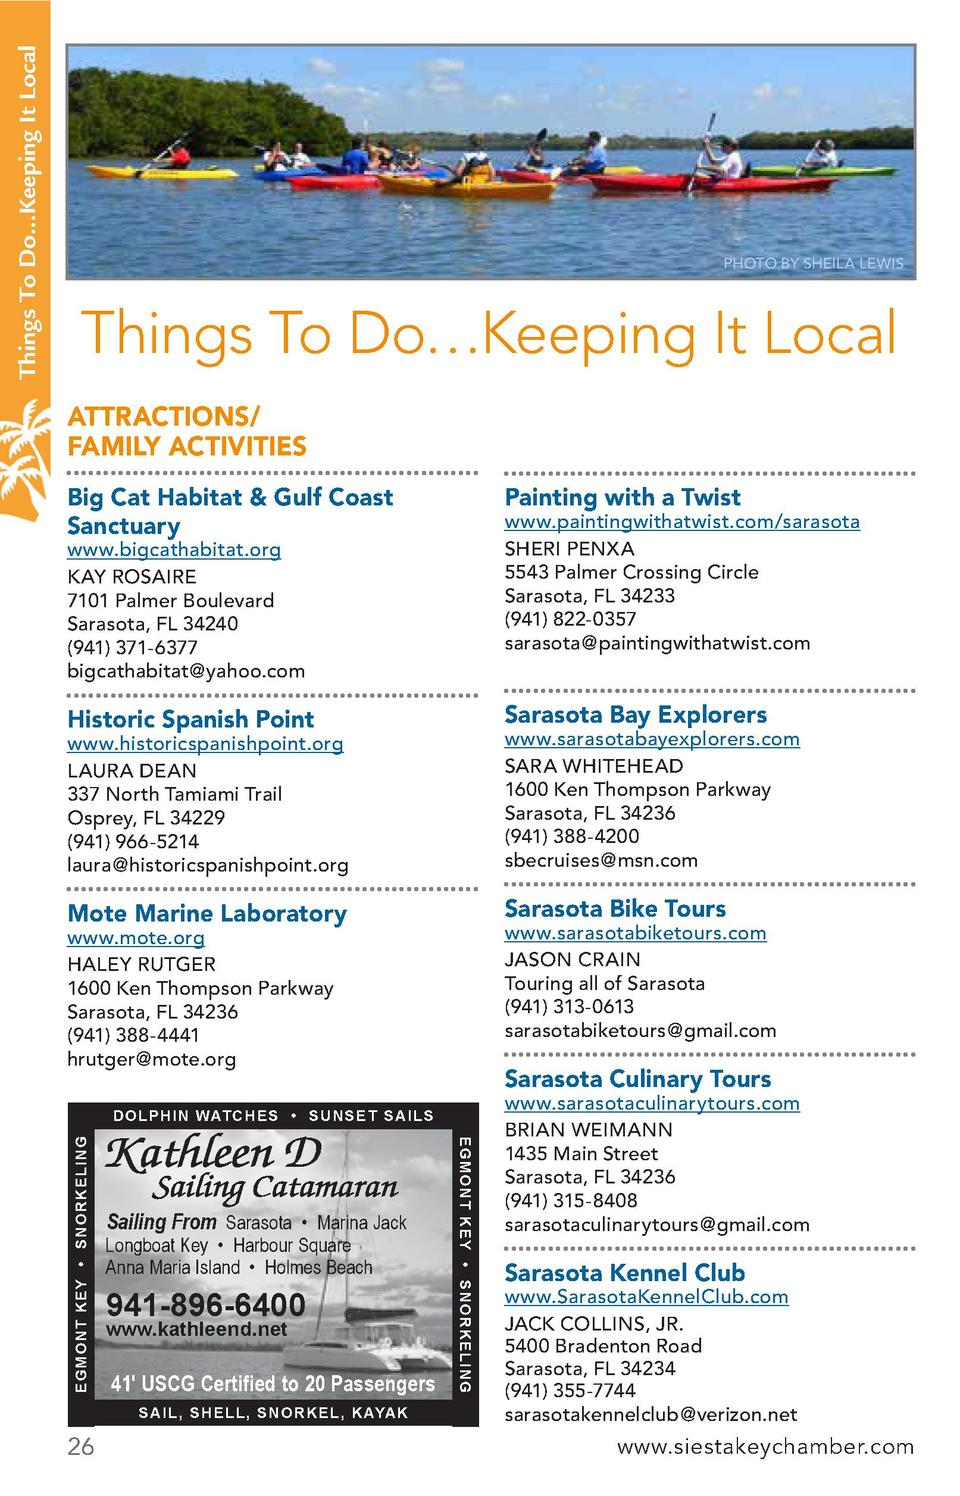 Things To Do   Keeping It Local ATTRACTIONS  FAMILY ACTIVITIES Big Cat Habitat   Gulf Coast Sanctuary  Painting with a Twi...